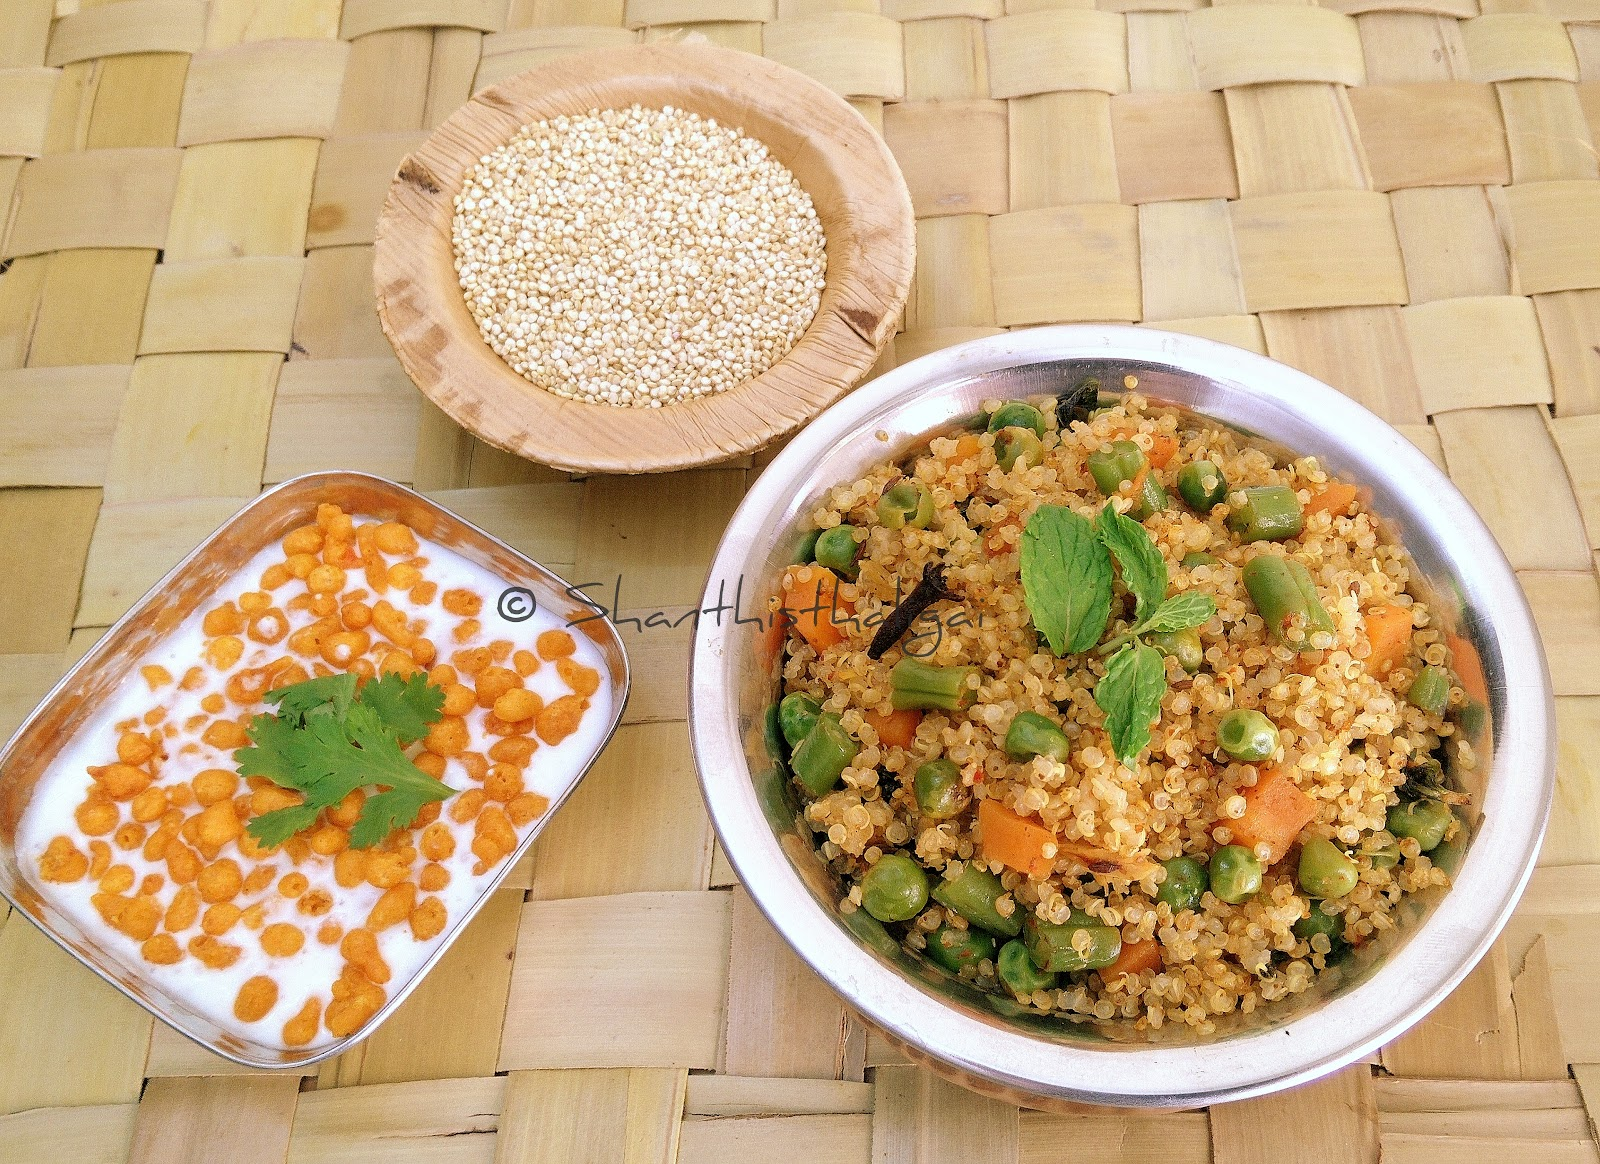 How to make  Quinoa biryani?, How to make Quinoa vegetable biryani?